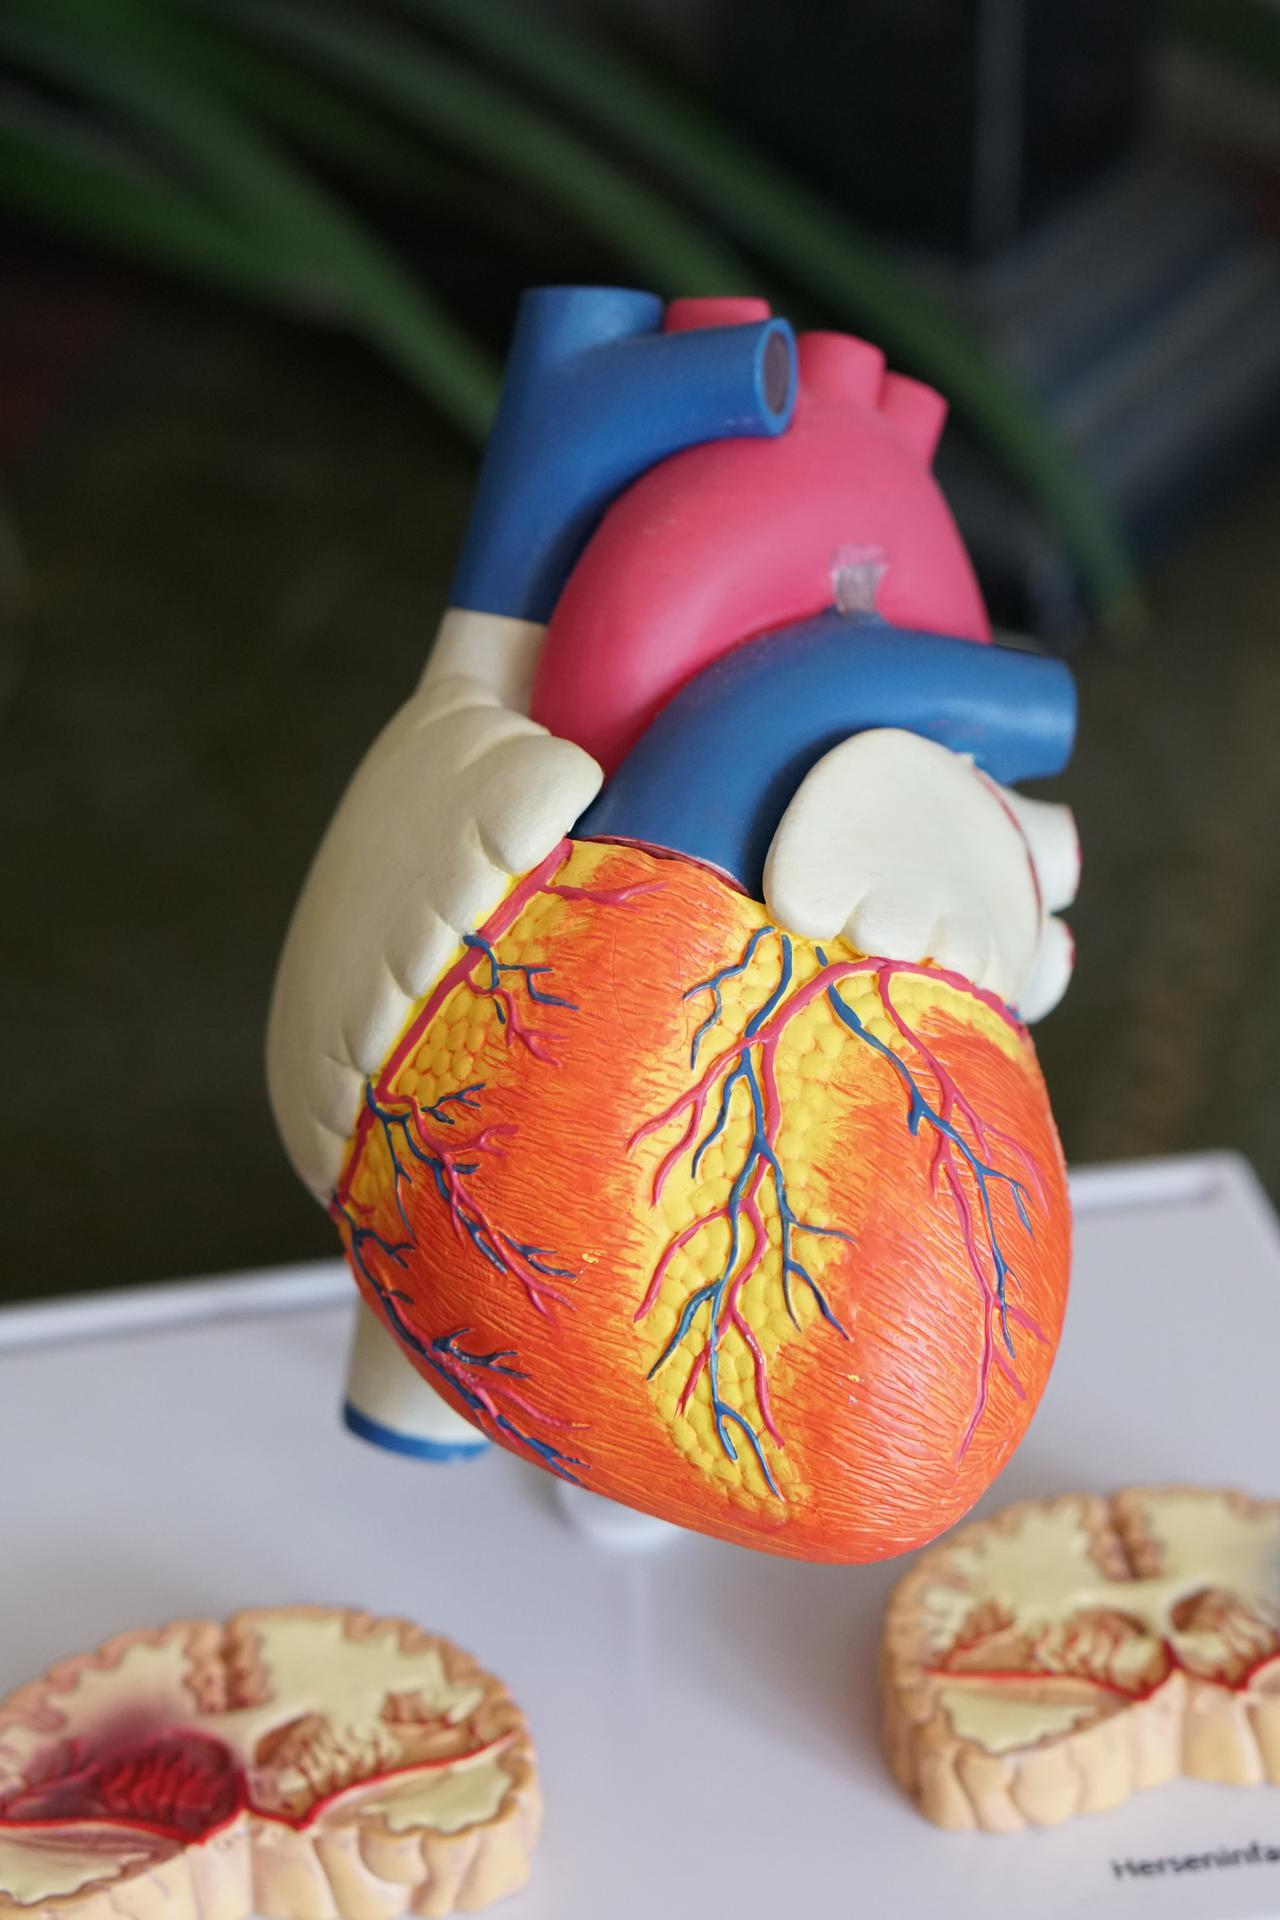 A model of the heart, which our doctors treat every day.